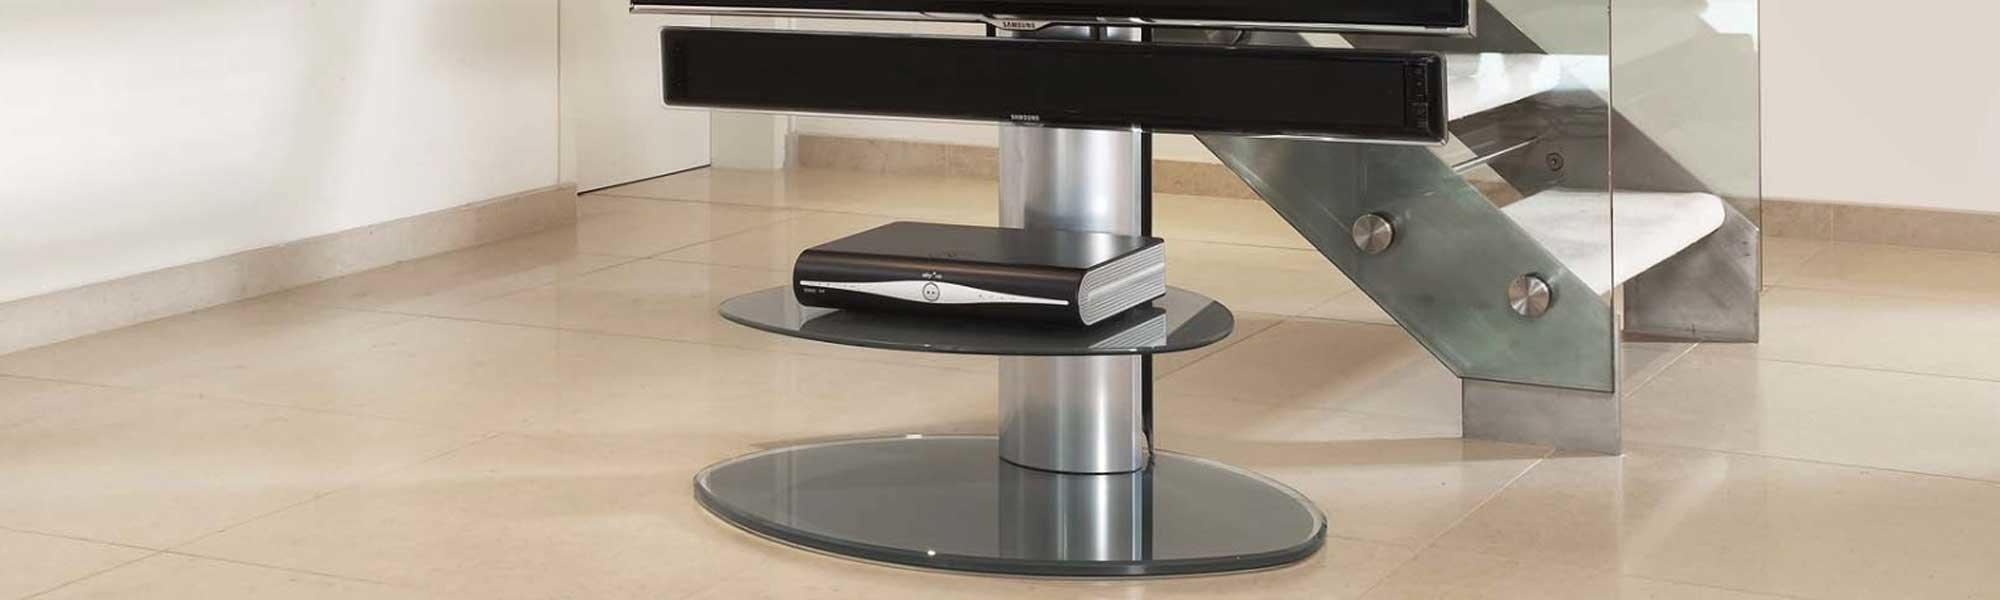 Off The Wall Motion TV Stand with TV Bracket - Clear Glass